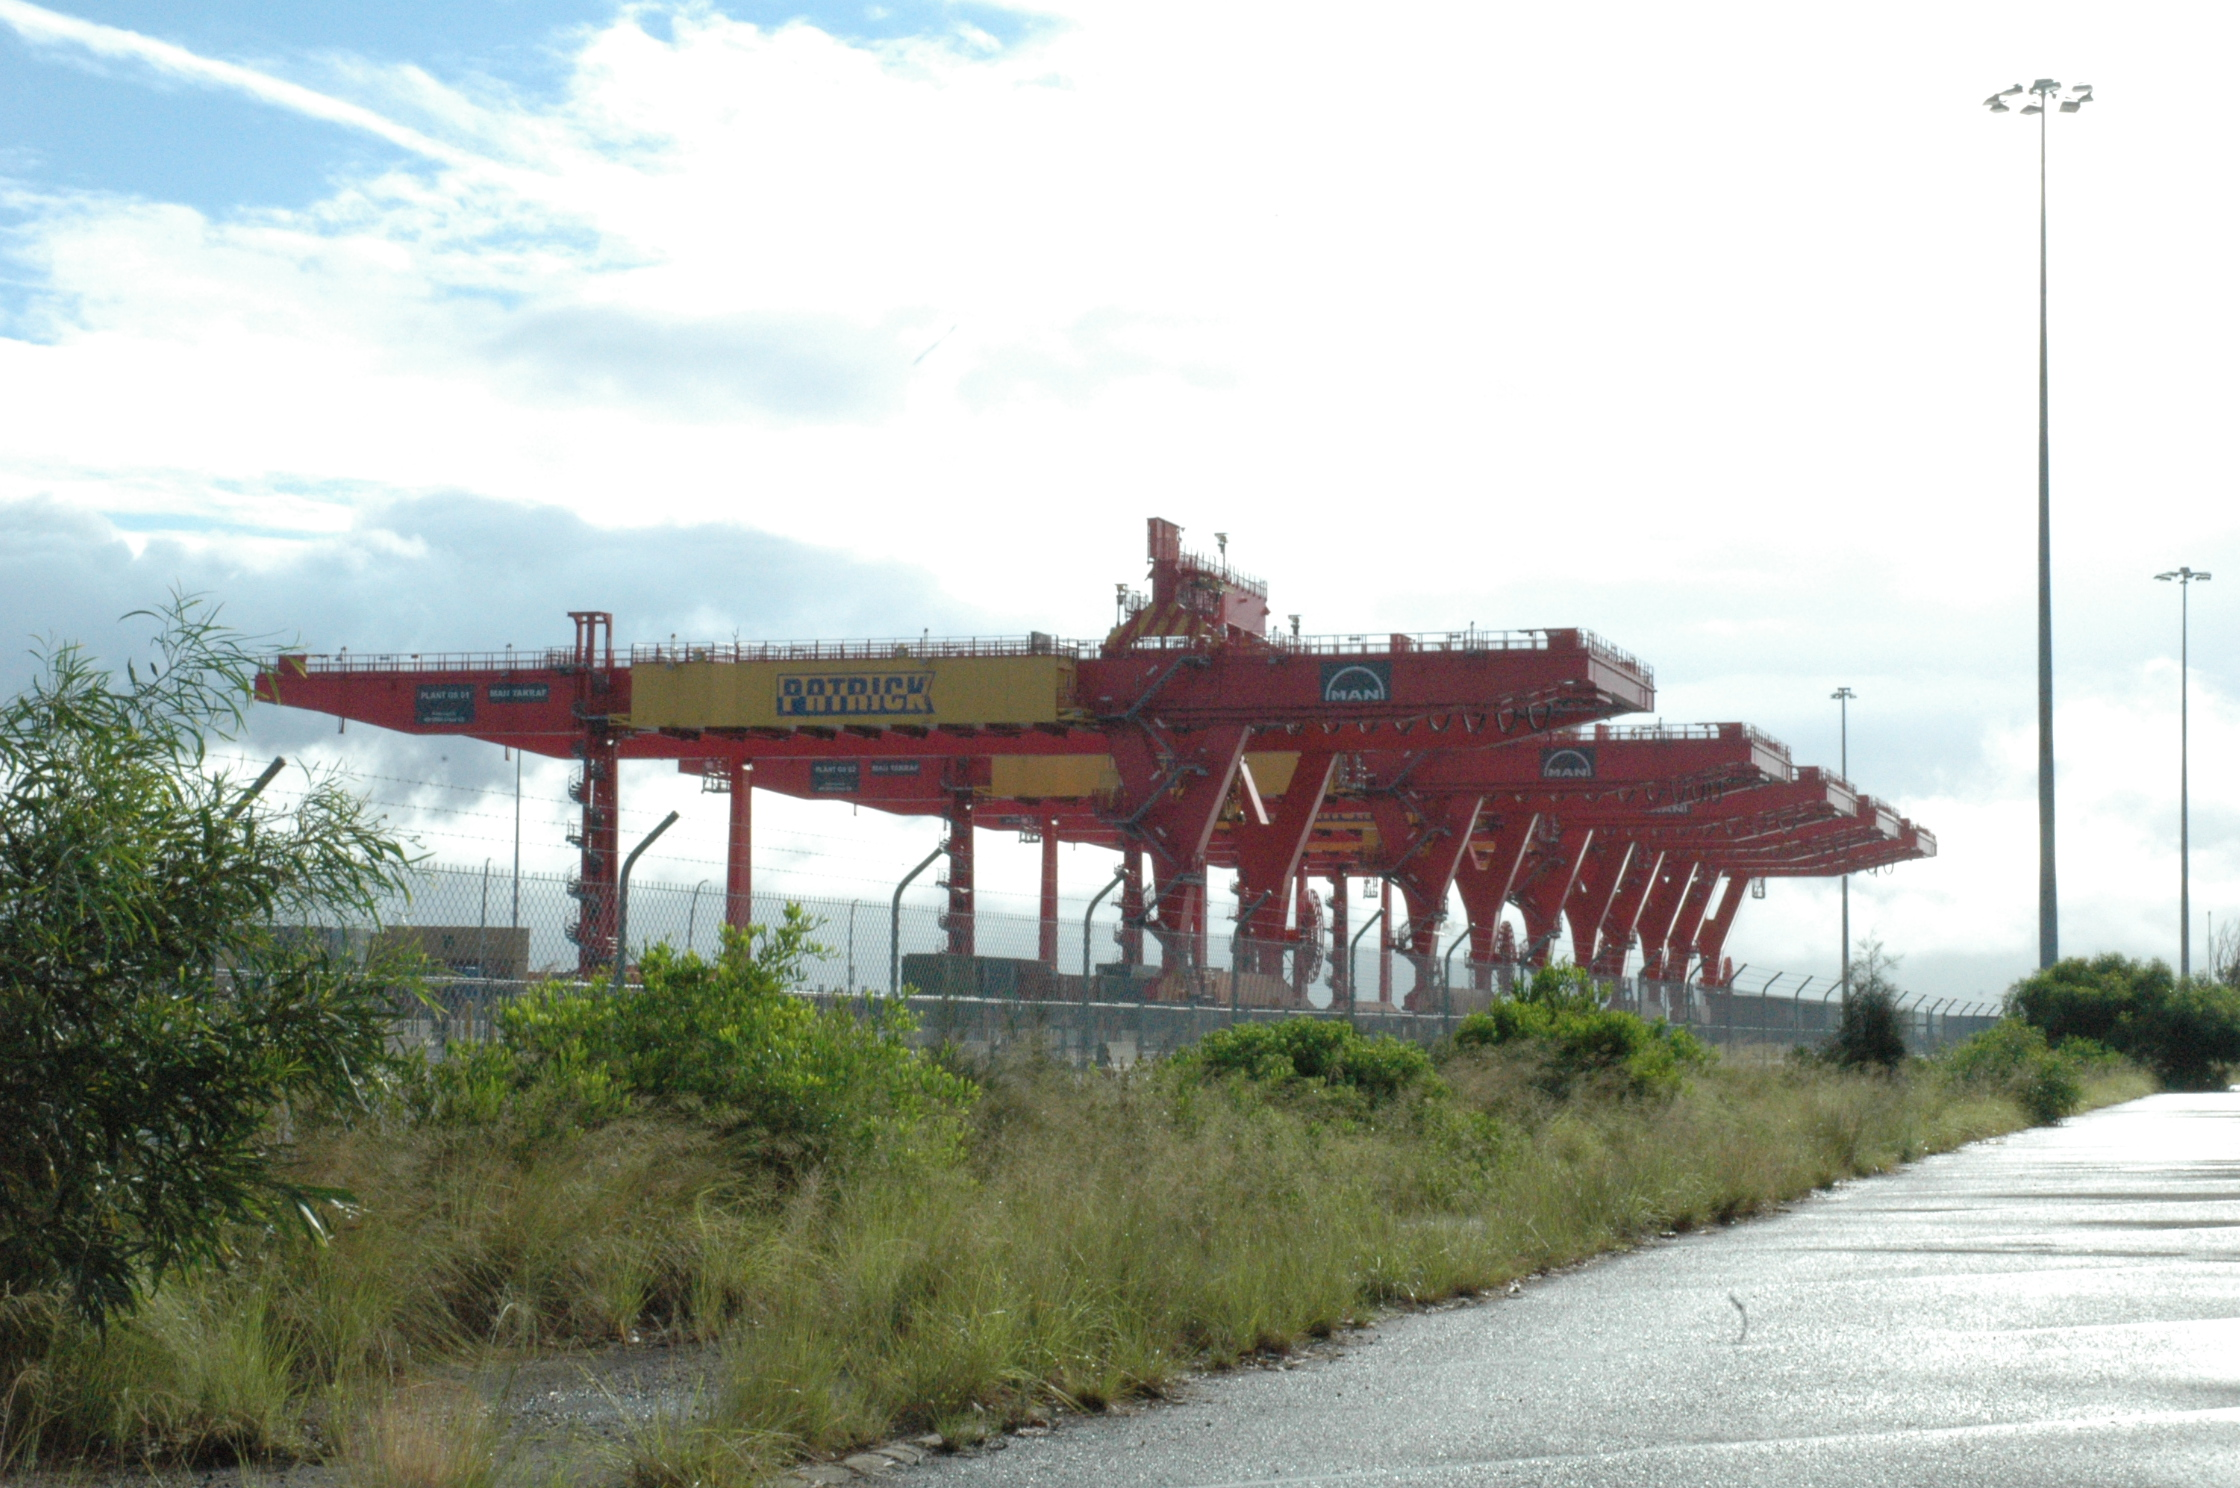 A MAN AG container crane belonging to Patrick Corporation at Port Botany, New South Wales, Australia.